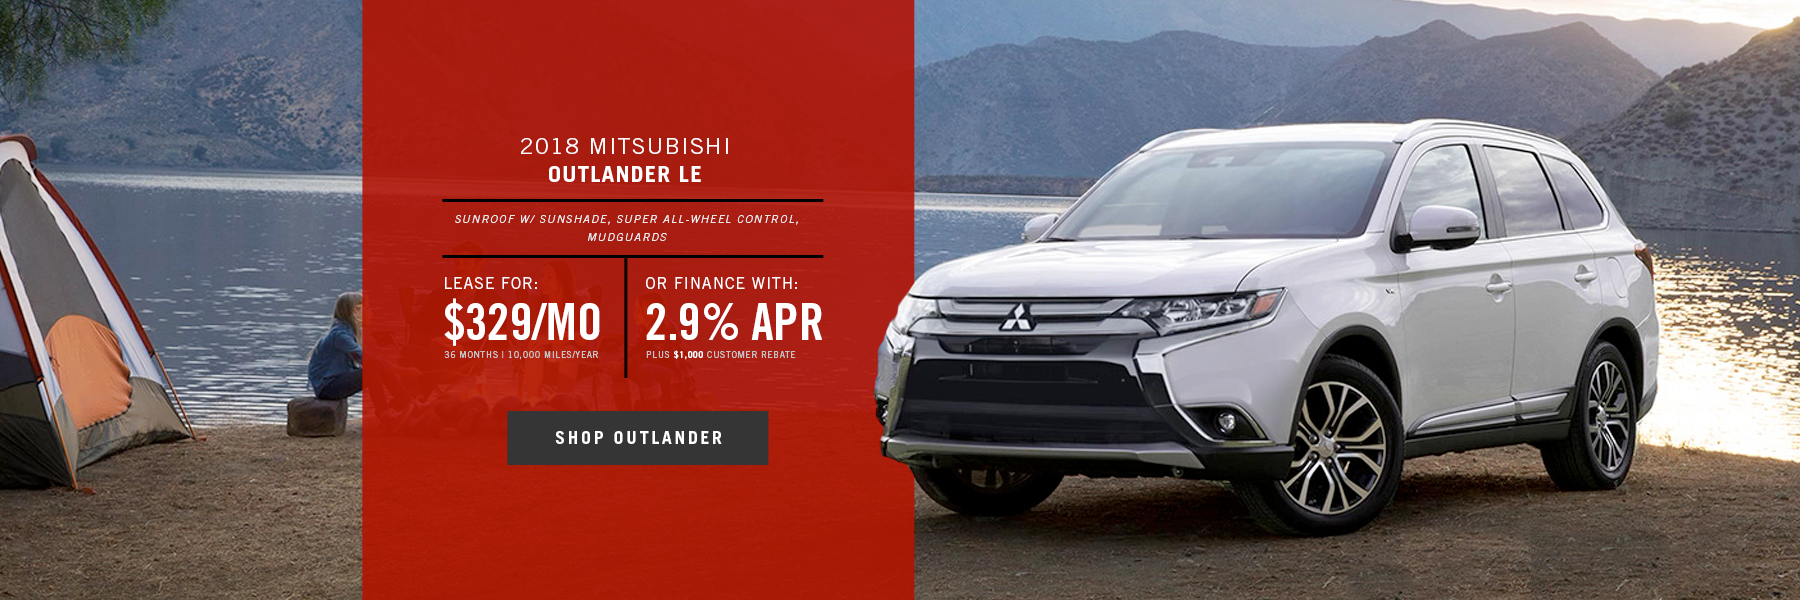 Mitsubishi Outlander Special Offer